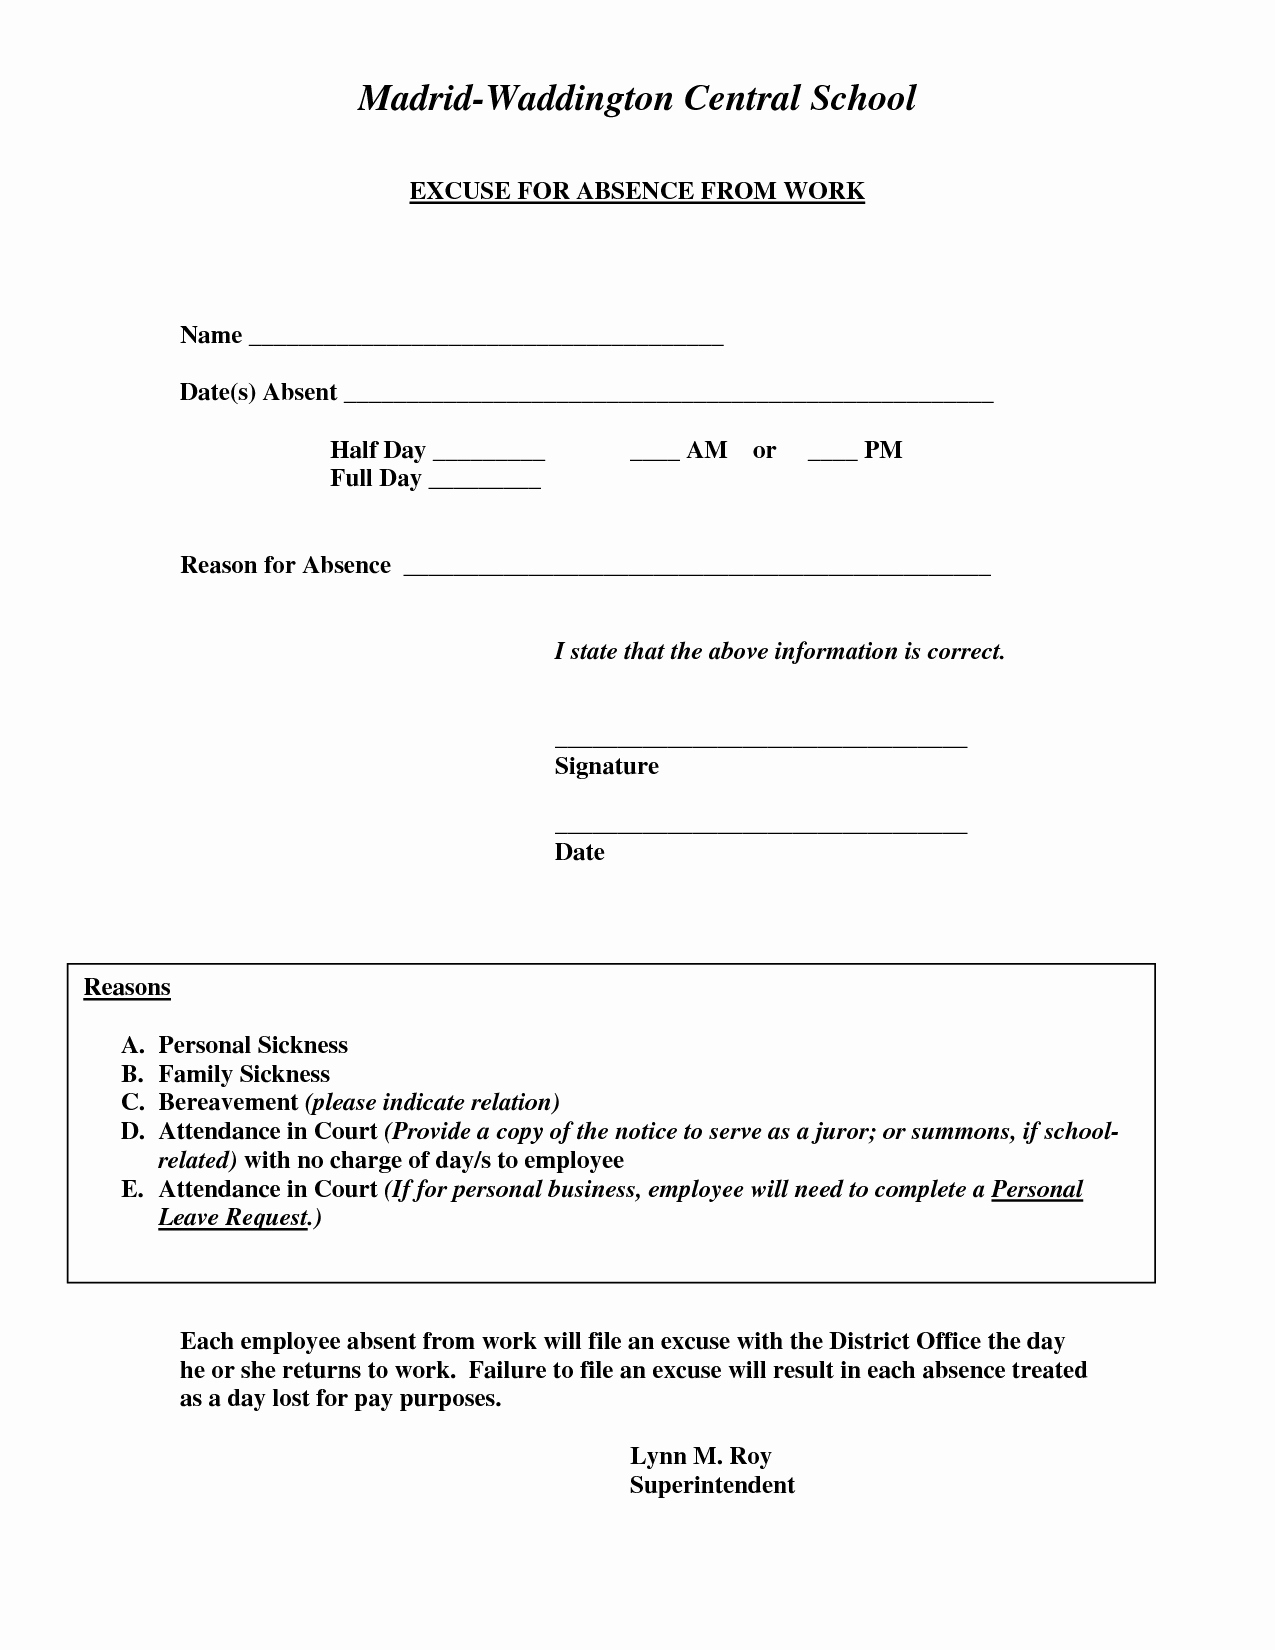 Free Doctors Note Template Inspirational Doctors Excuse for Work Template